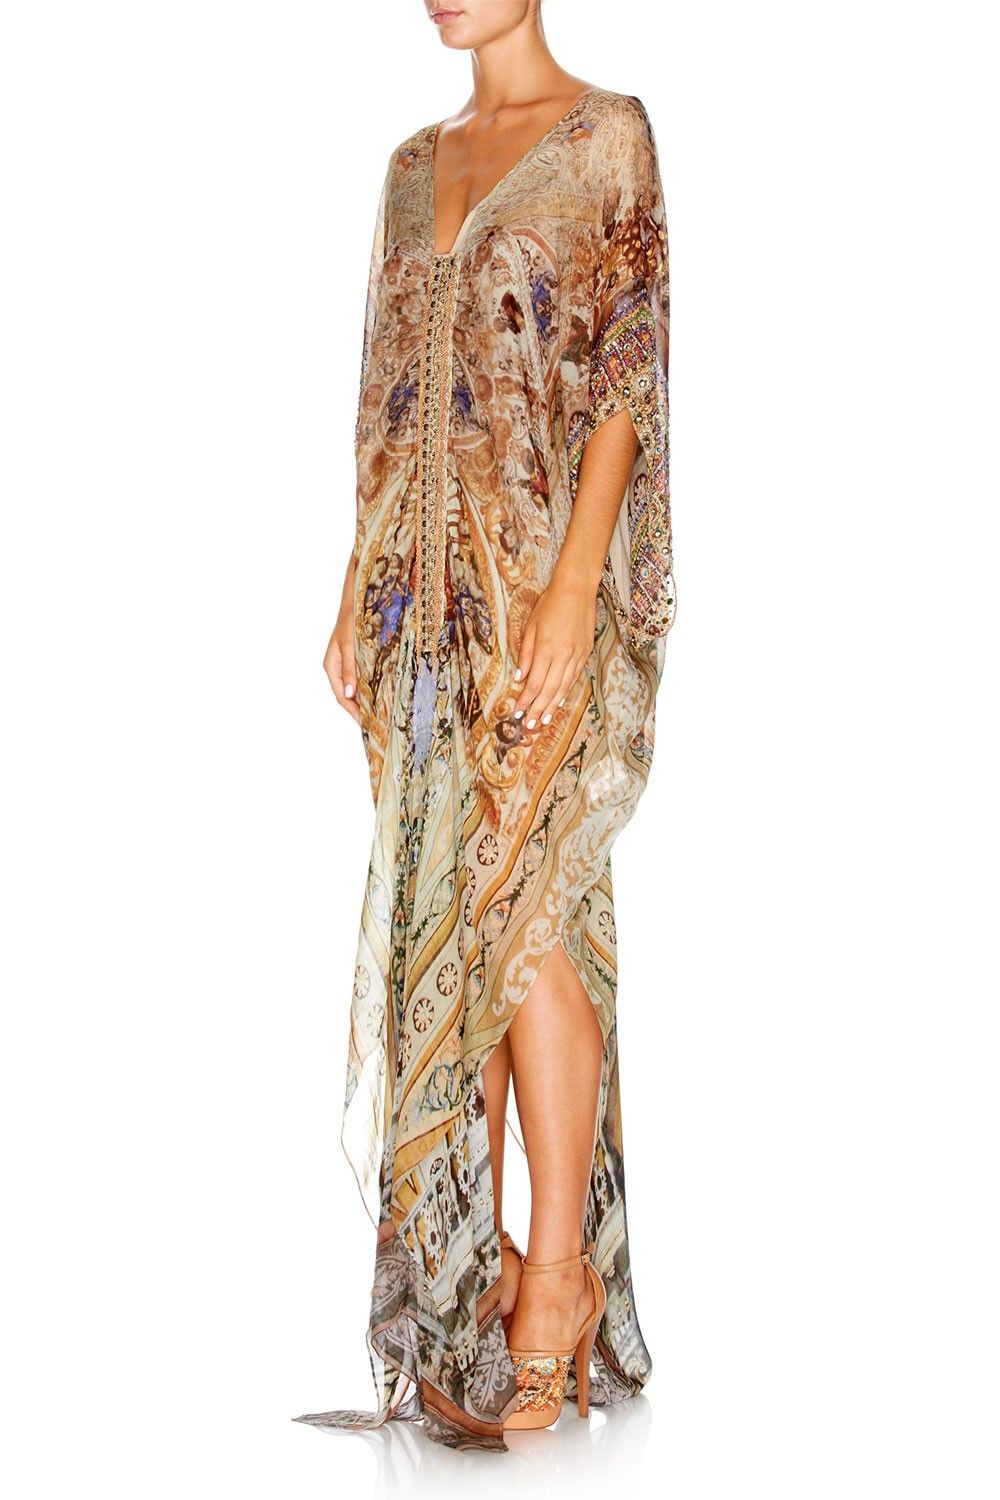 f0467e2ccc1 CAMILLA - CEREMONY OF TRUTH KAFTAN W  FRONT TAB  629. DETAIL